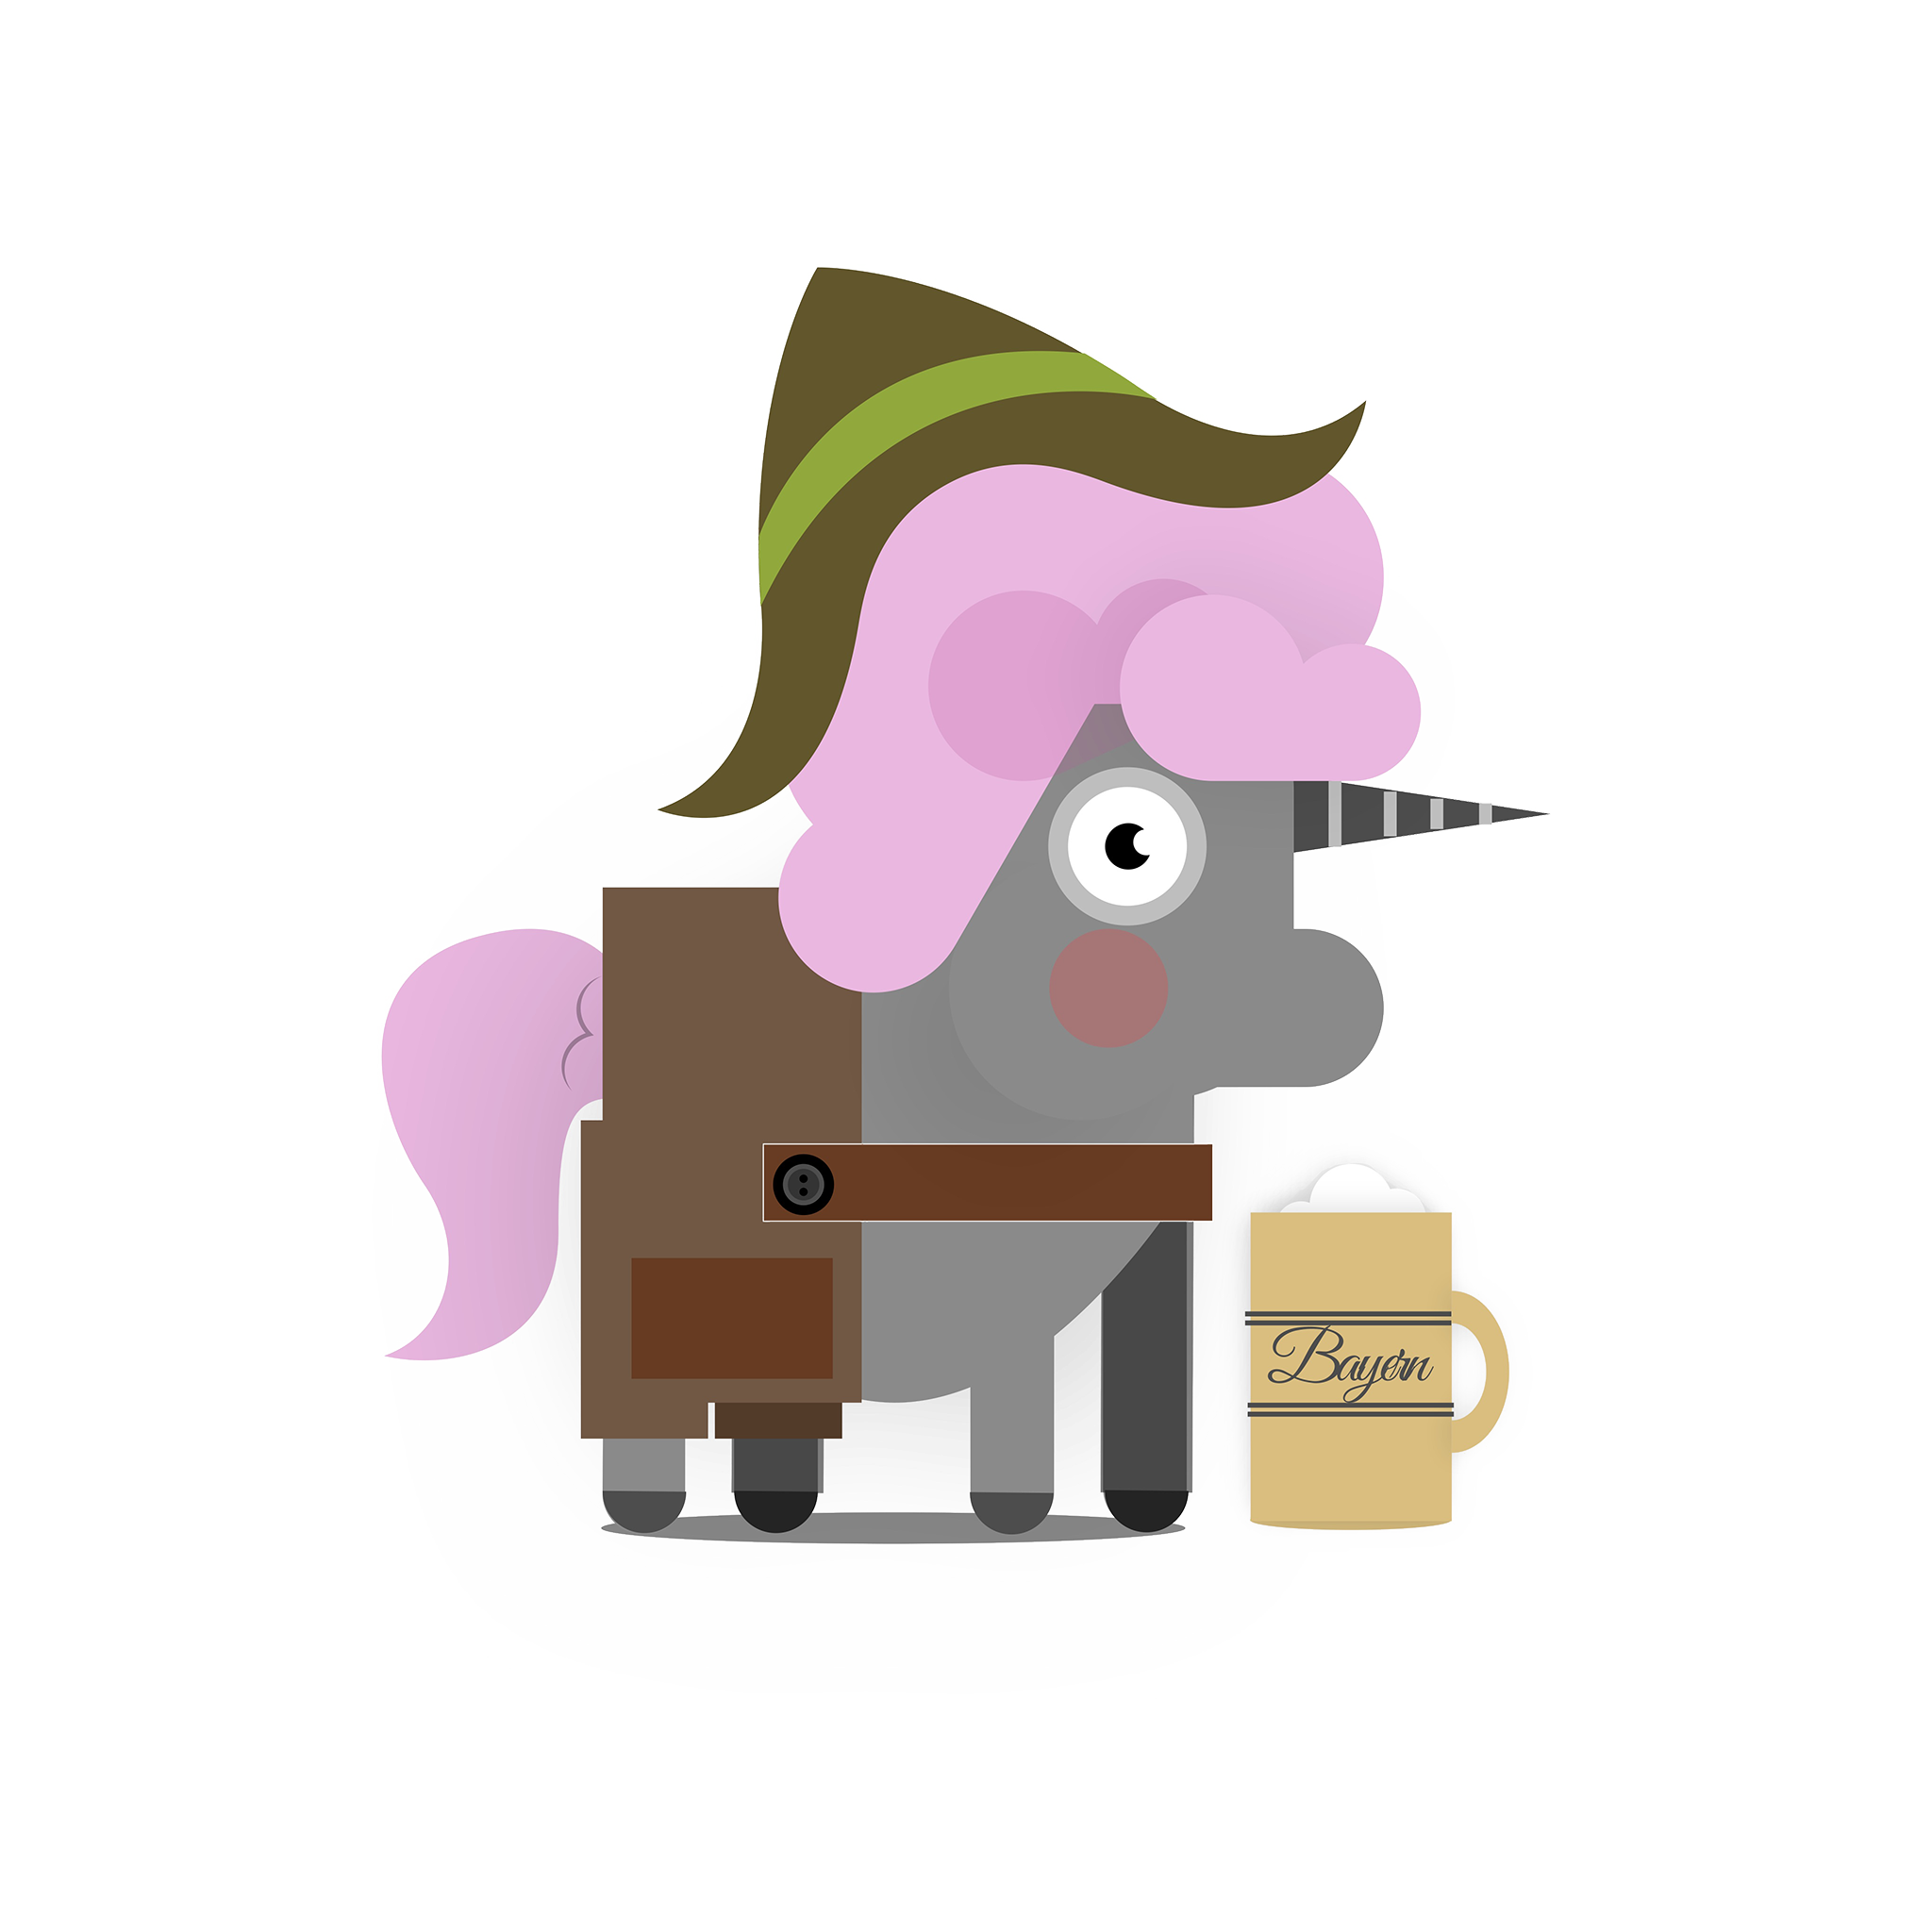 Bad Unicorn messages sticker-9